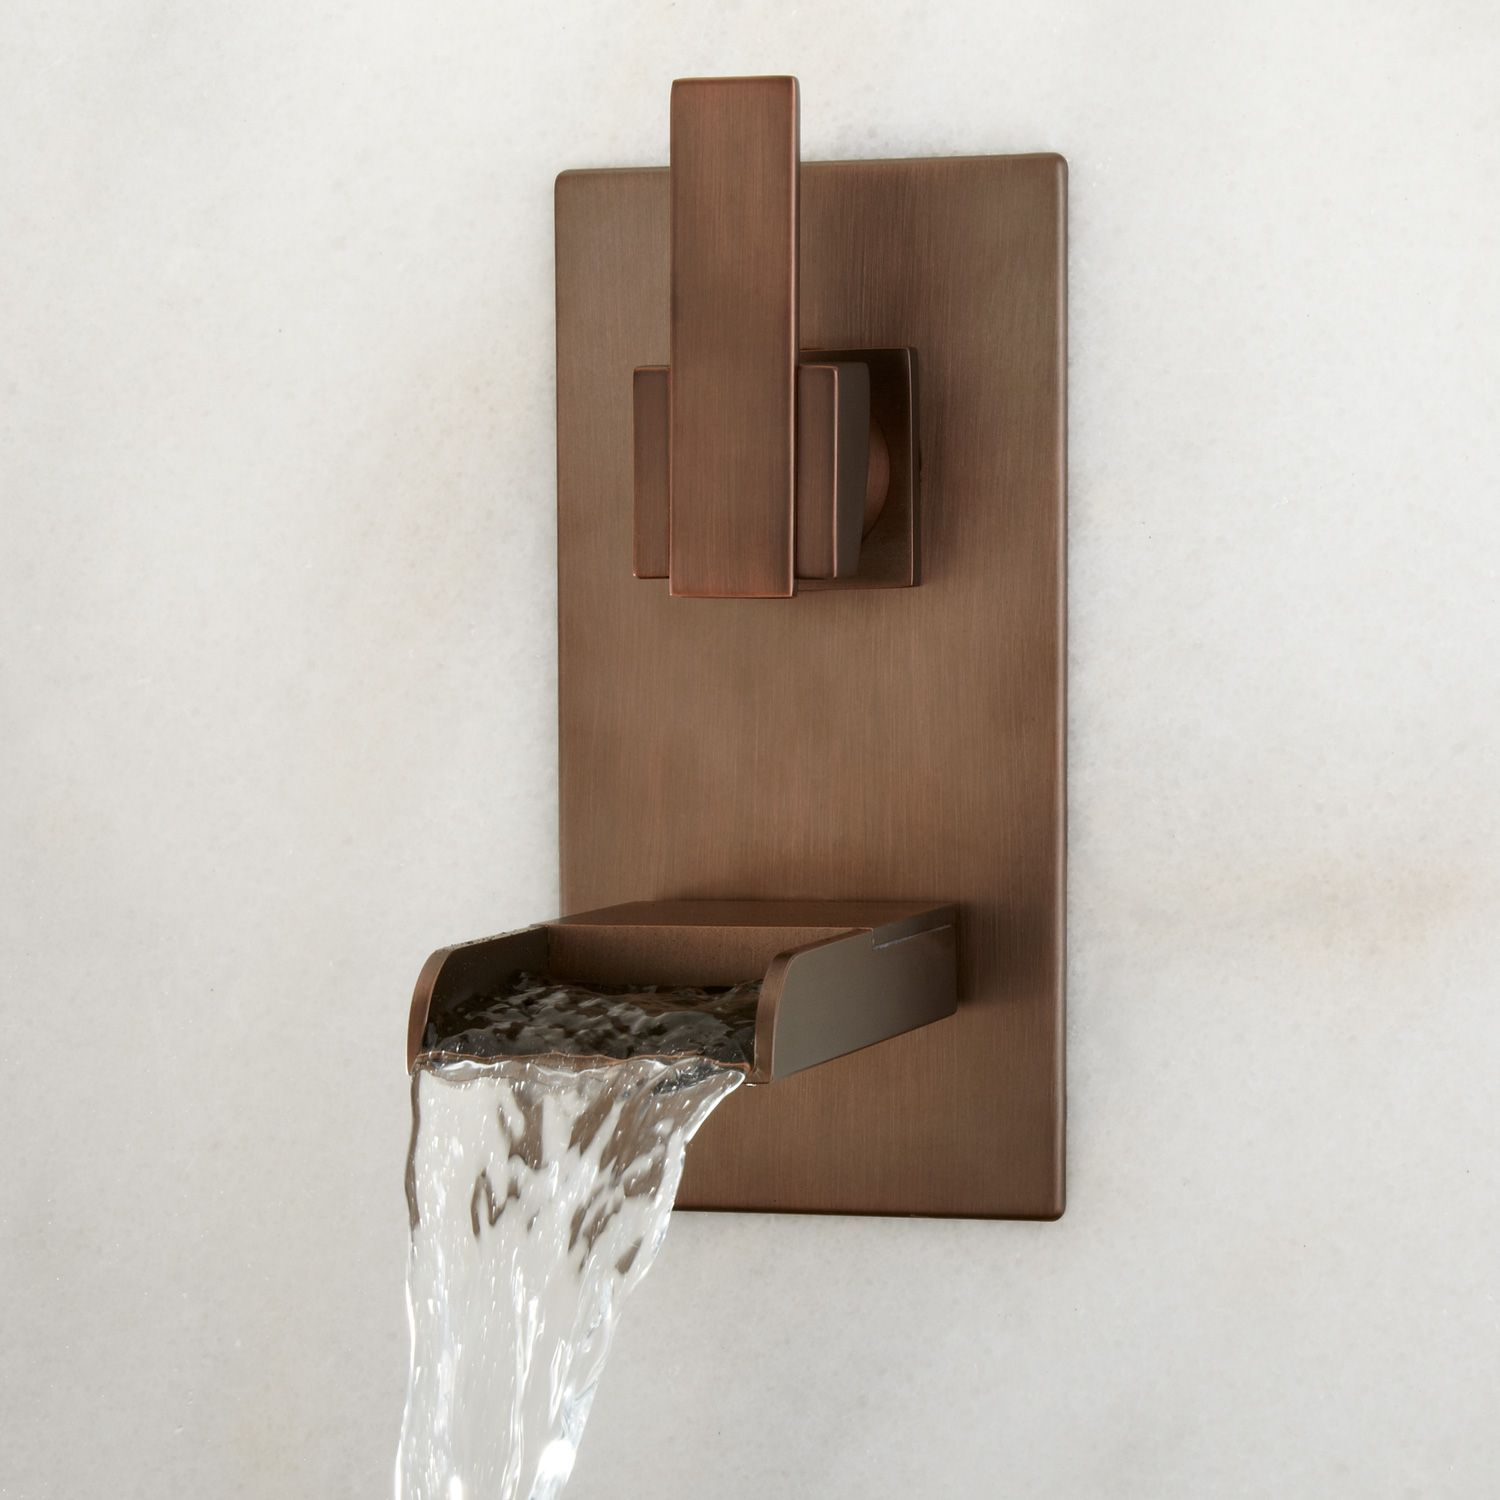 waterfall faucet wall - Google Search